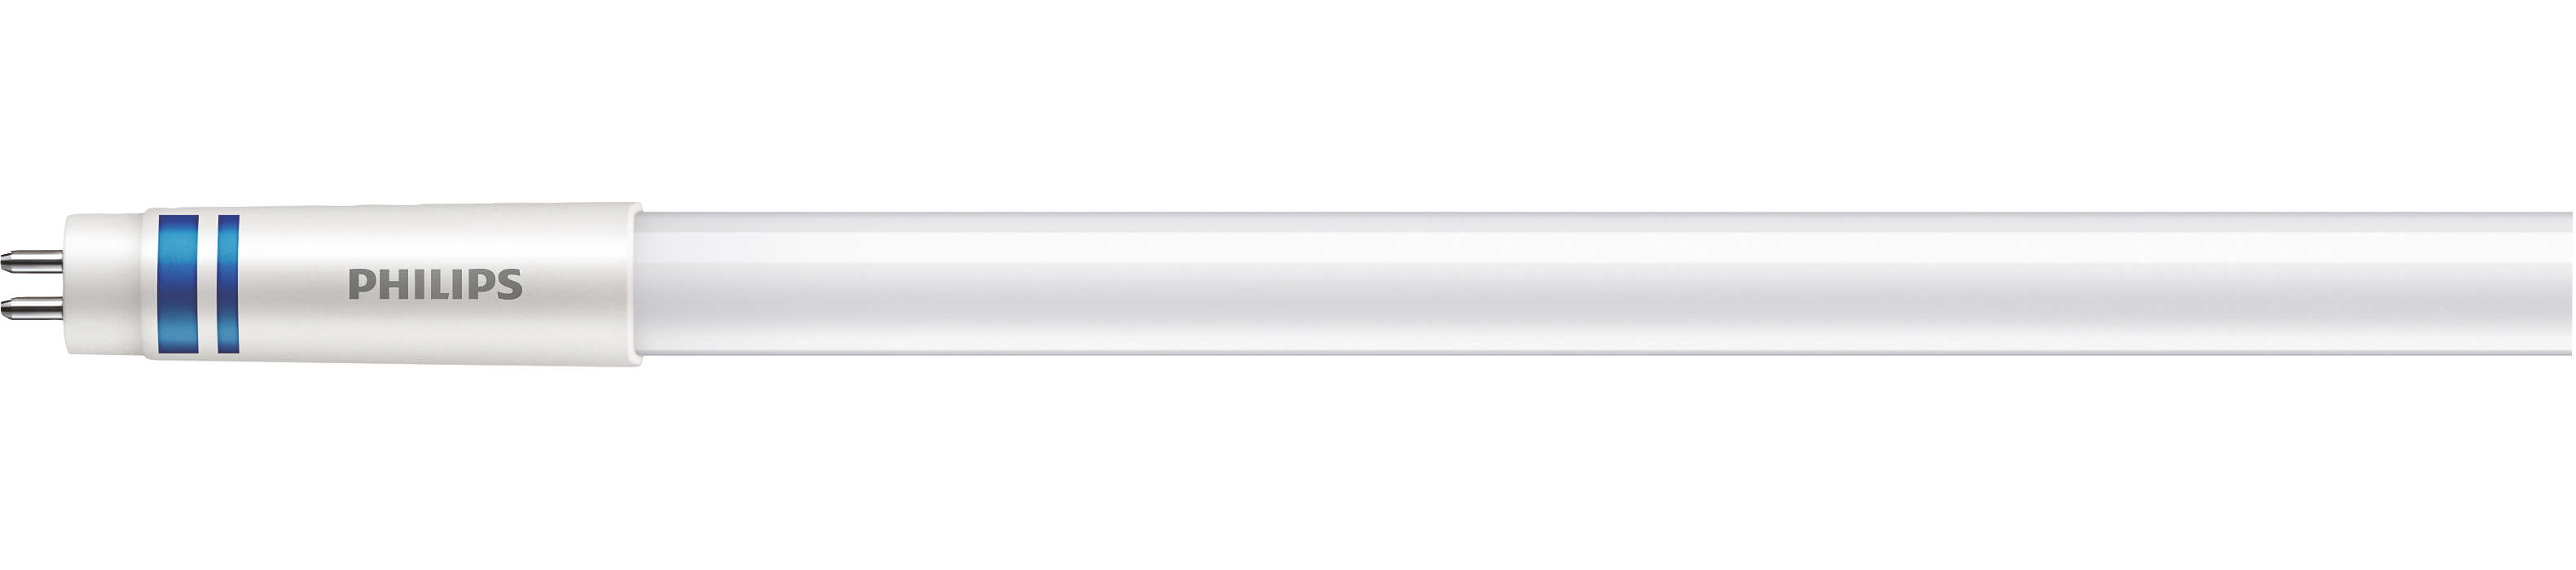 The new generation of energy-saving T5 tube lighting